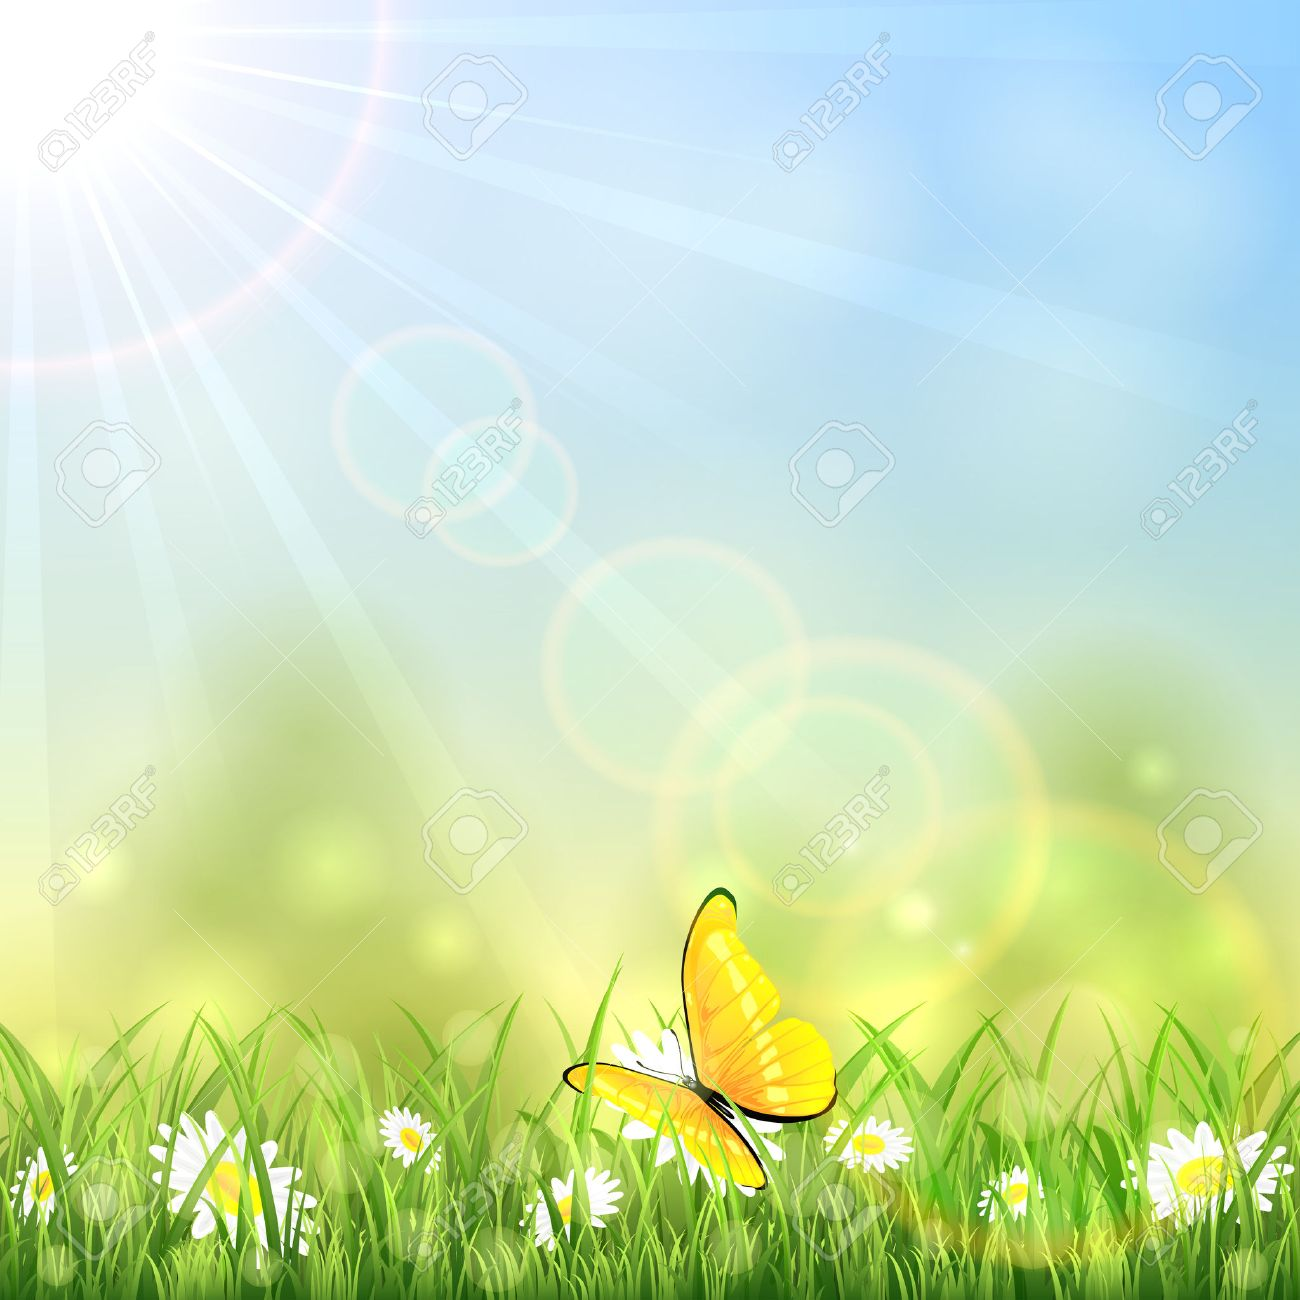 Yellow butterfly and white flowers on sunny background, illustration. - 43090017